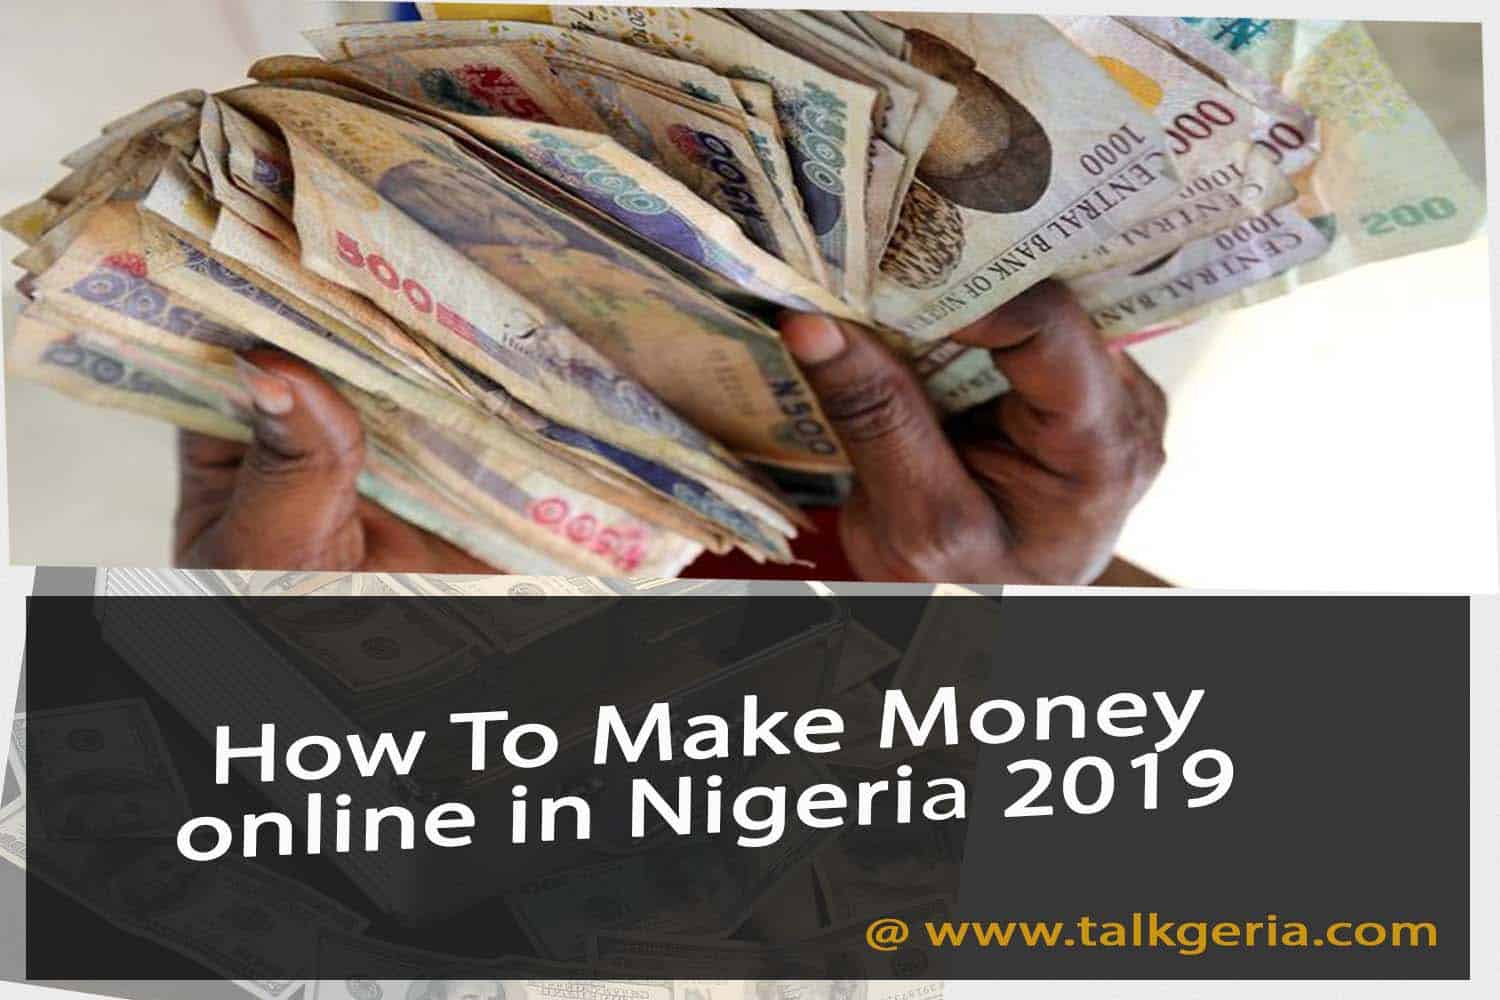 online business in nigeria that pays,how to make naira online,how to make money online in 2019,list of online business in nigeria,how to earn money from google at home,how to earn money online for free,earn money through internet,how to make money online in nigeria as a student